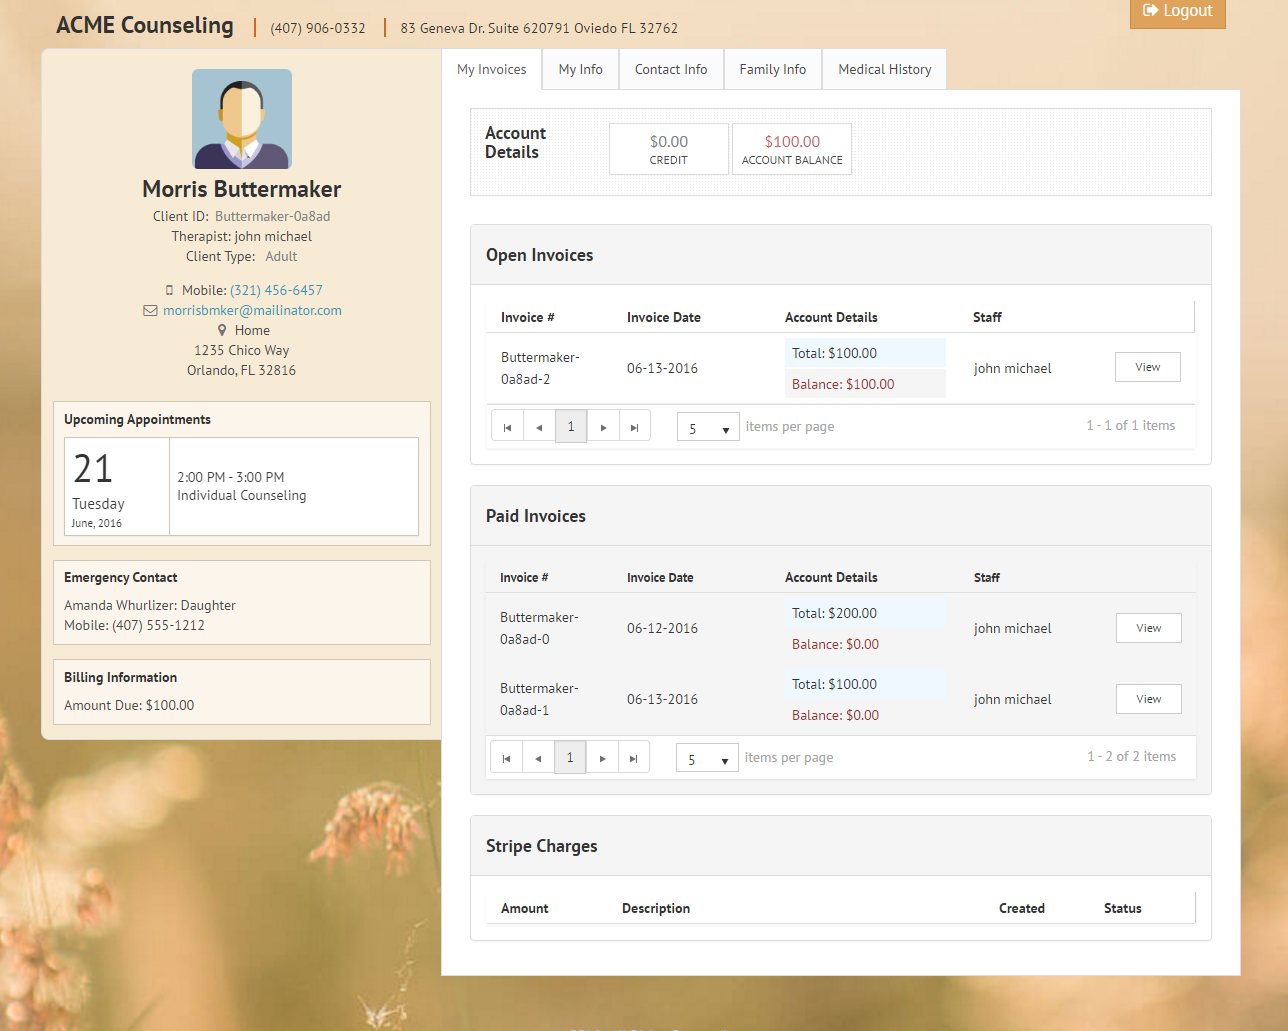 Clients can pay invoices online using the client portal in TherapyZen